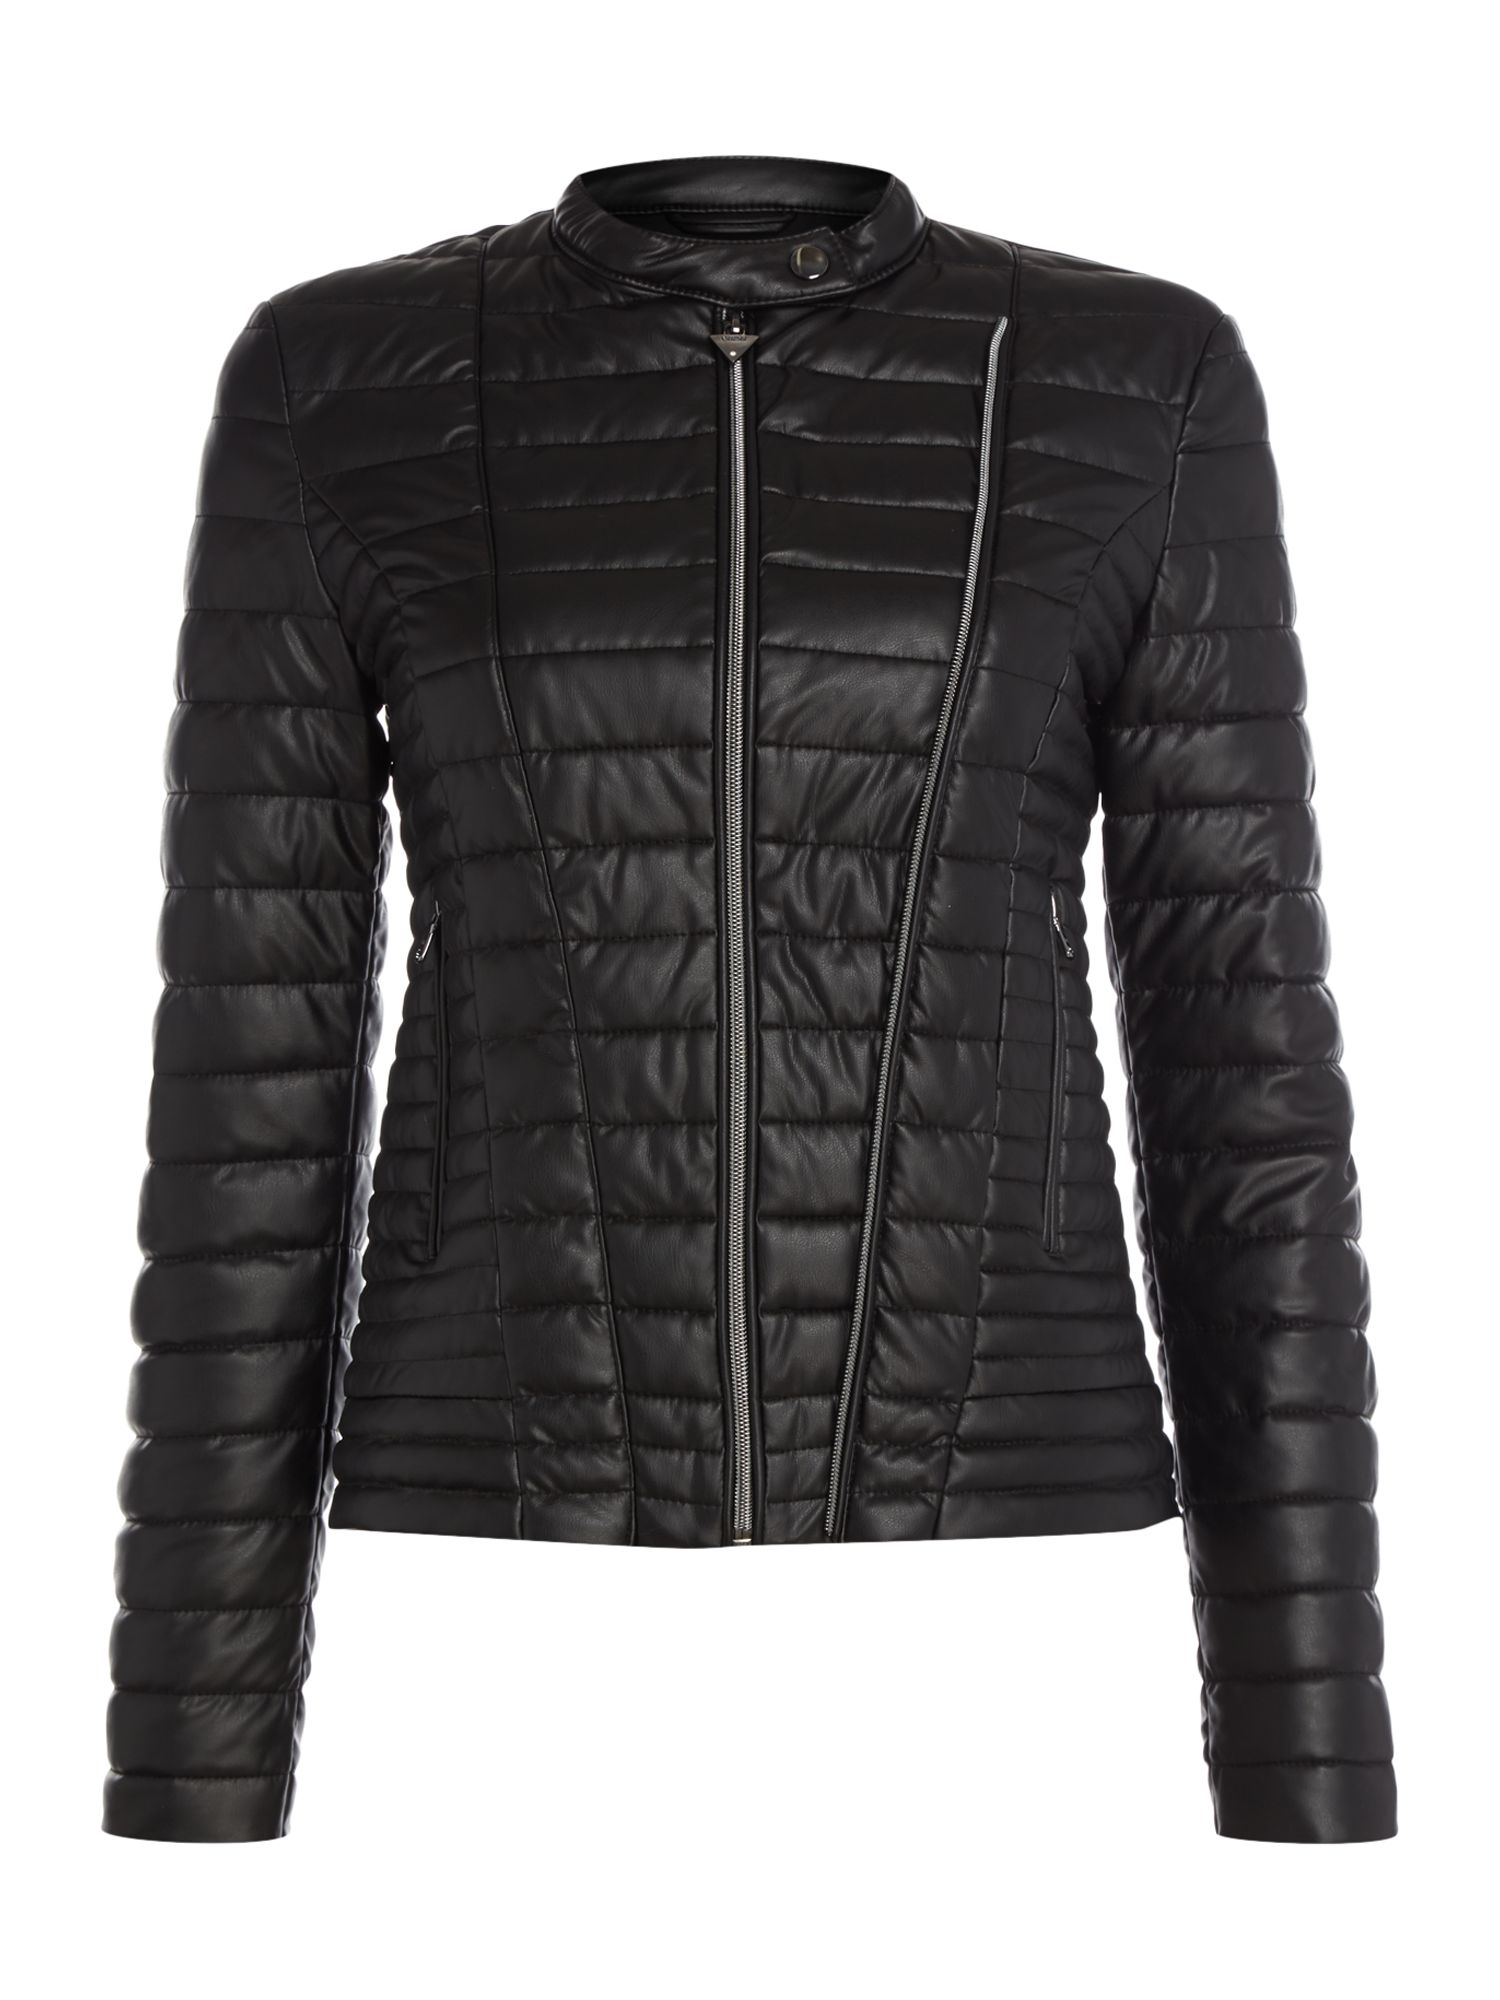 Guess Vona Jacket in jet black, Black